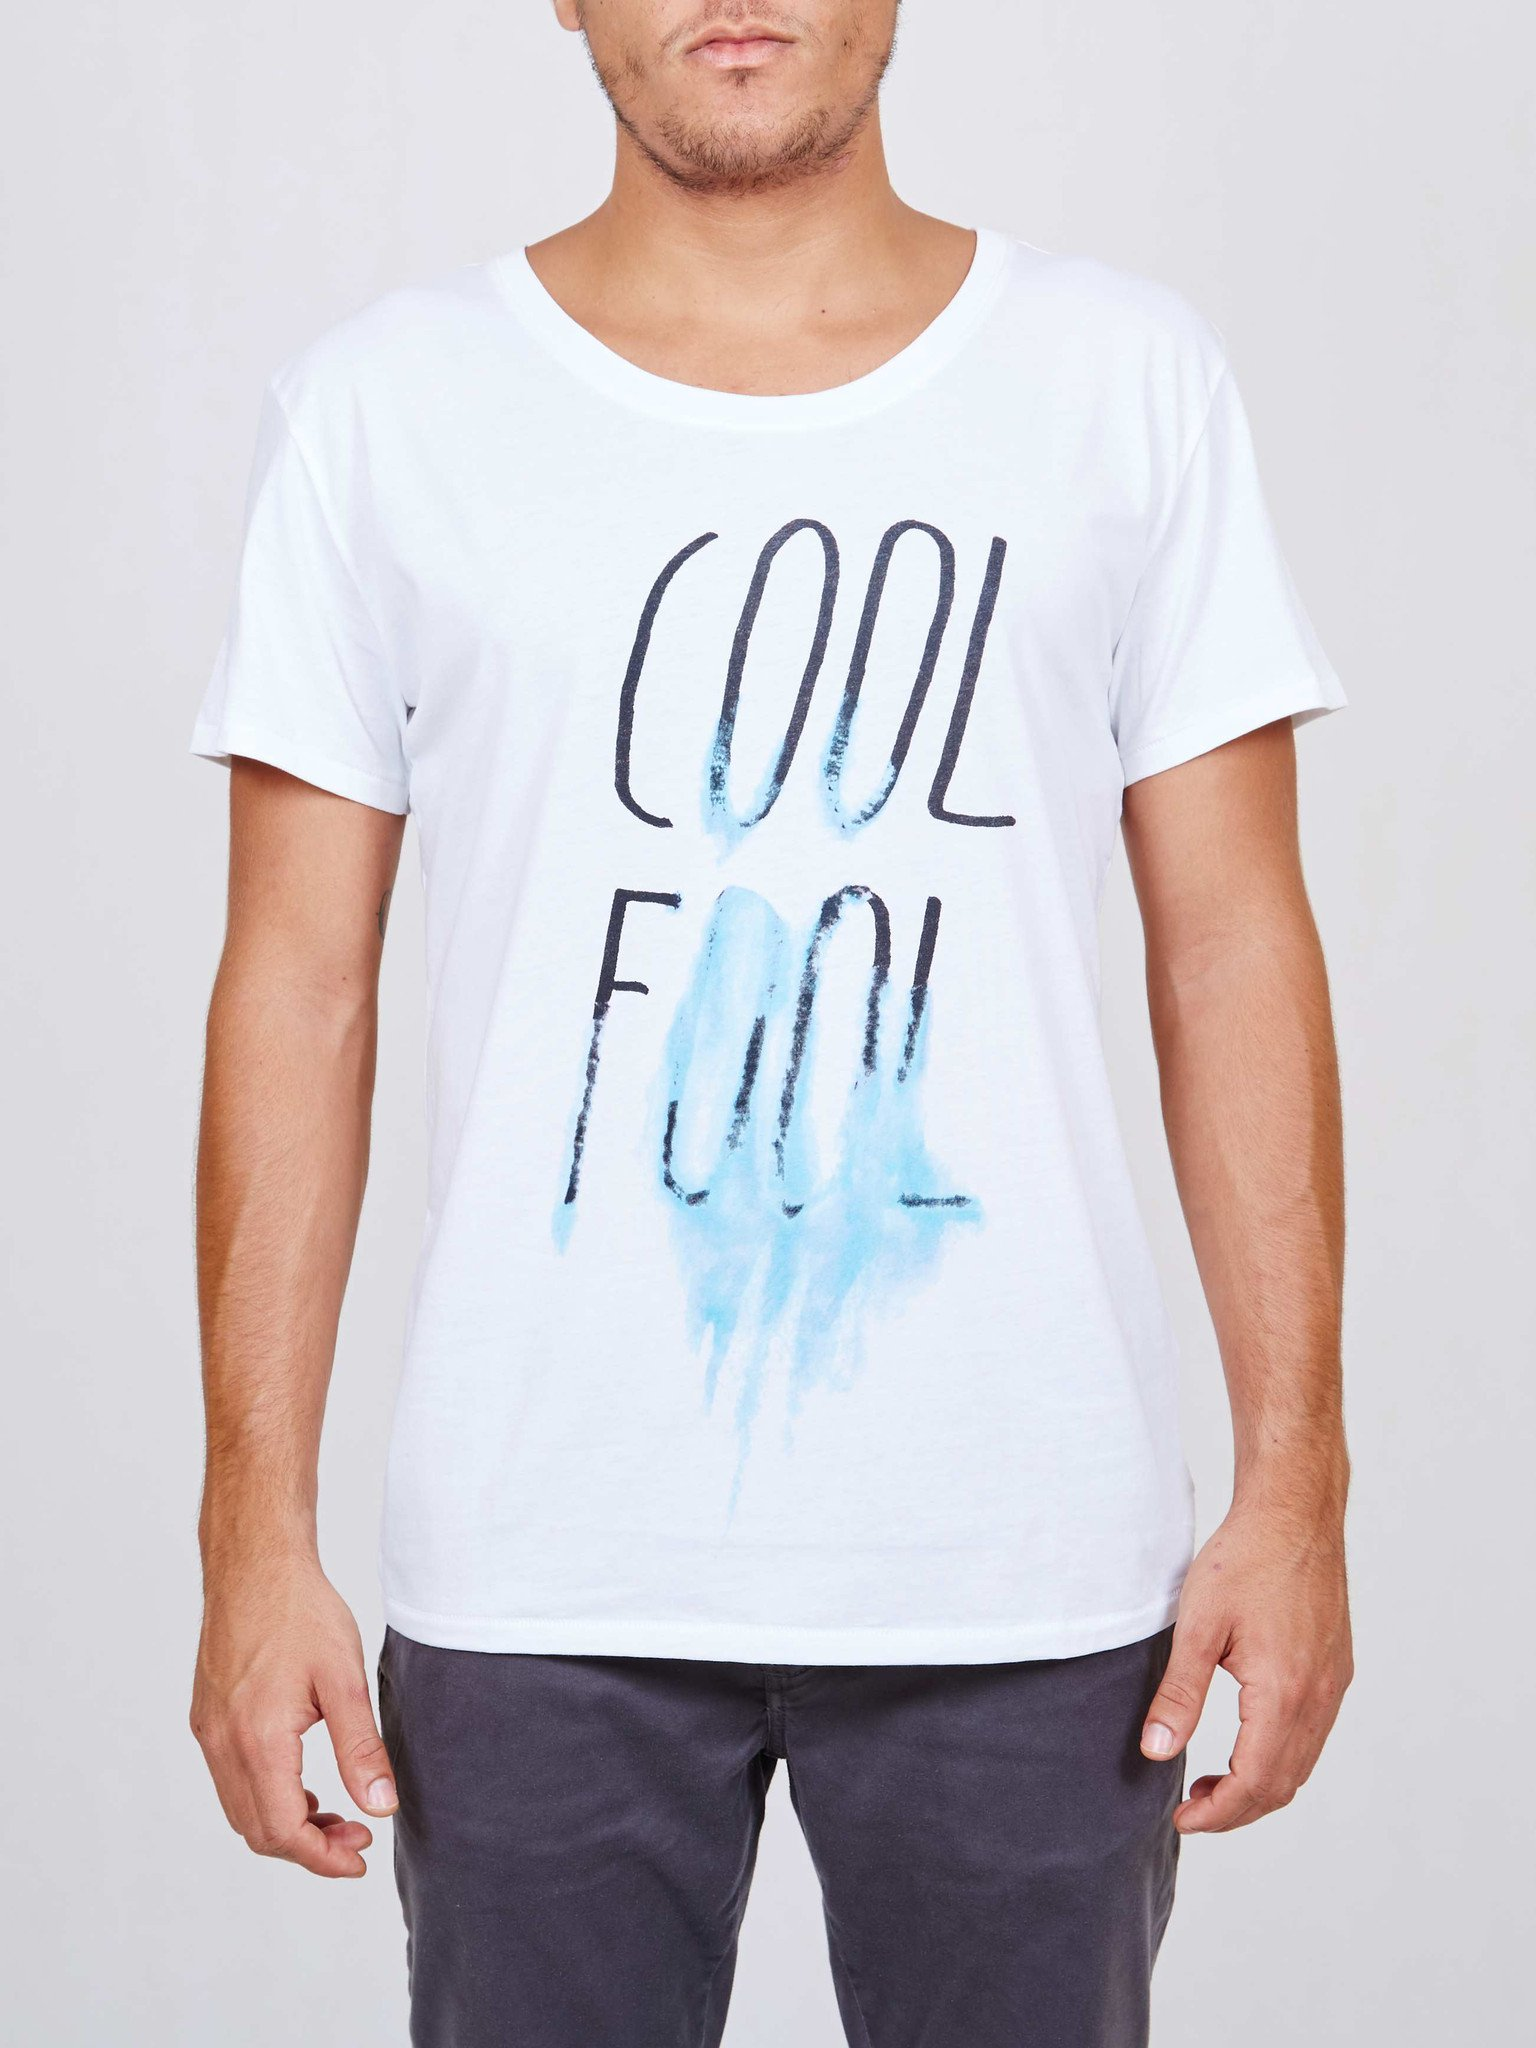 Foto do Camiseta Cotton Project Cool Fool